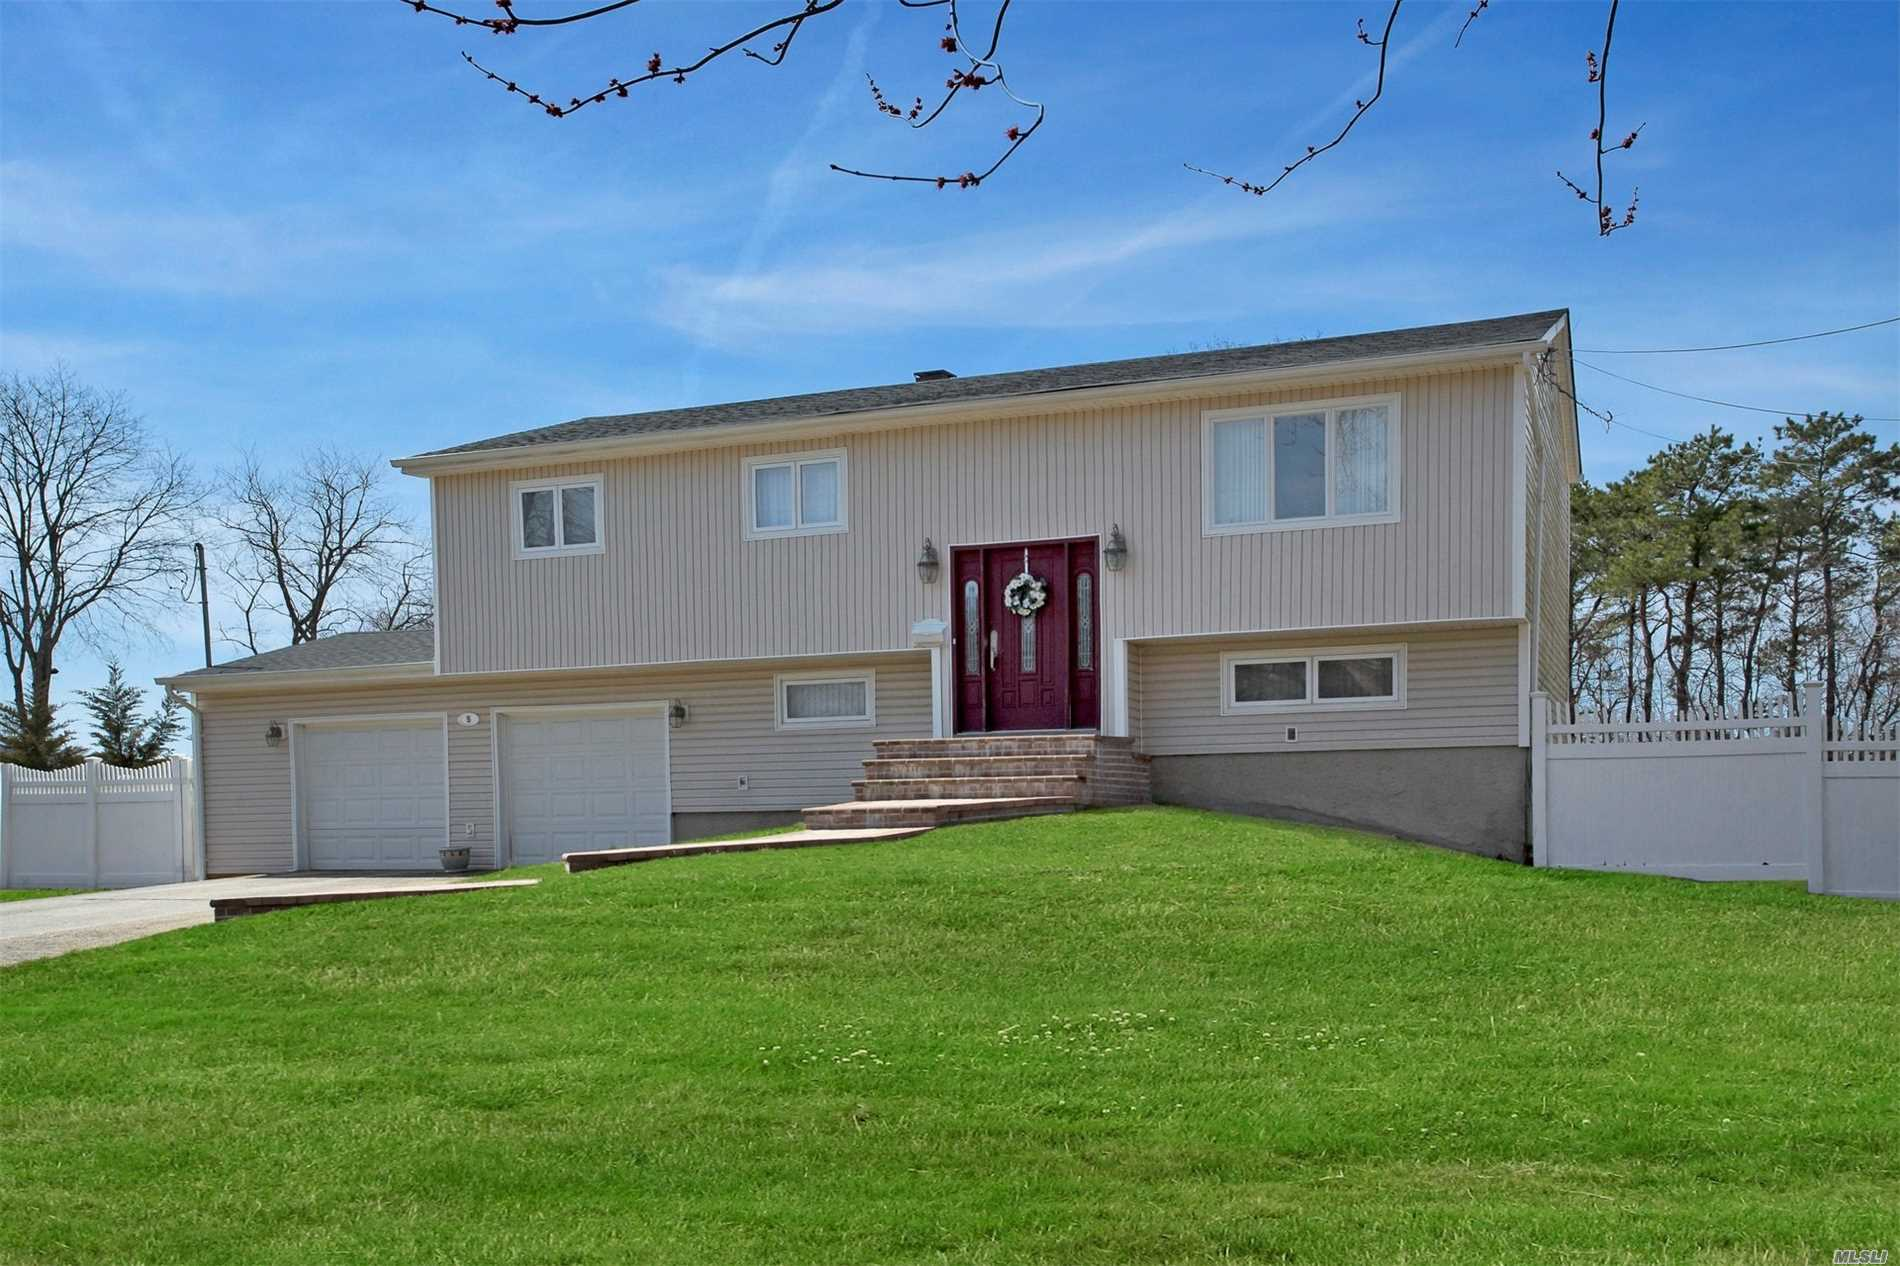 Beautiful 4 BR, 2 Bath Hi Ranch on .73 Acres W/2 car garage. This home offers gas heat and gas cooking.Remodeled kitchen with ceramic tile floor and back splash, Quartz countertop and stainless steel appliances.Updated windows, roof, vinyl siding & downstairs bath.Hardwood floors upstairs.Den W/custom shutters on window and sliders. Wonderful yard with a basketball court, swing set, paved patio, built in Fire Pit & In-Ground-Sprinklers. Move right in!